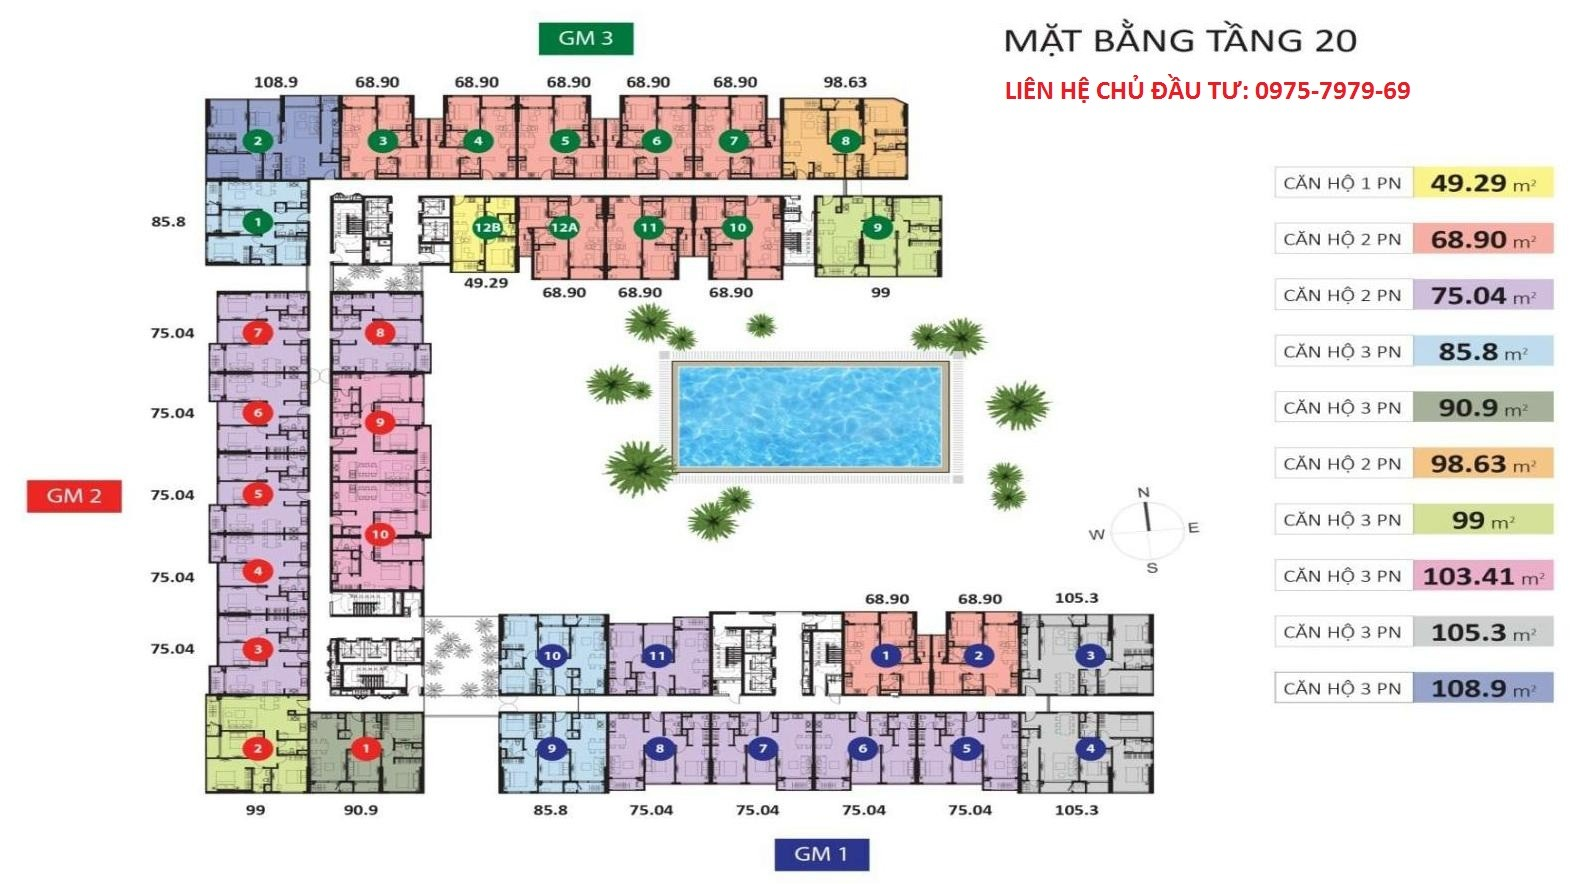 Mặt bằng tầng Golden Mansion